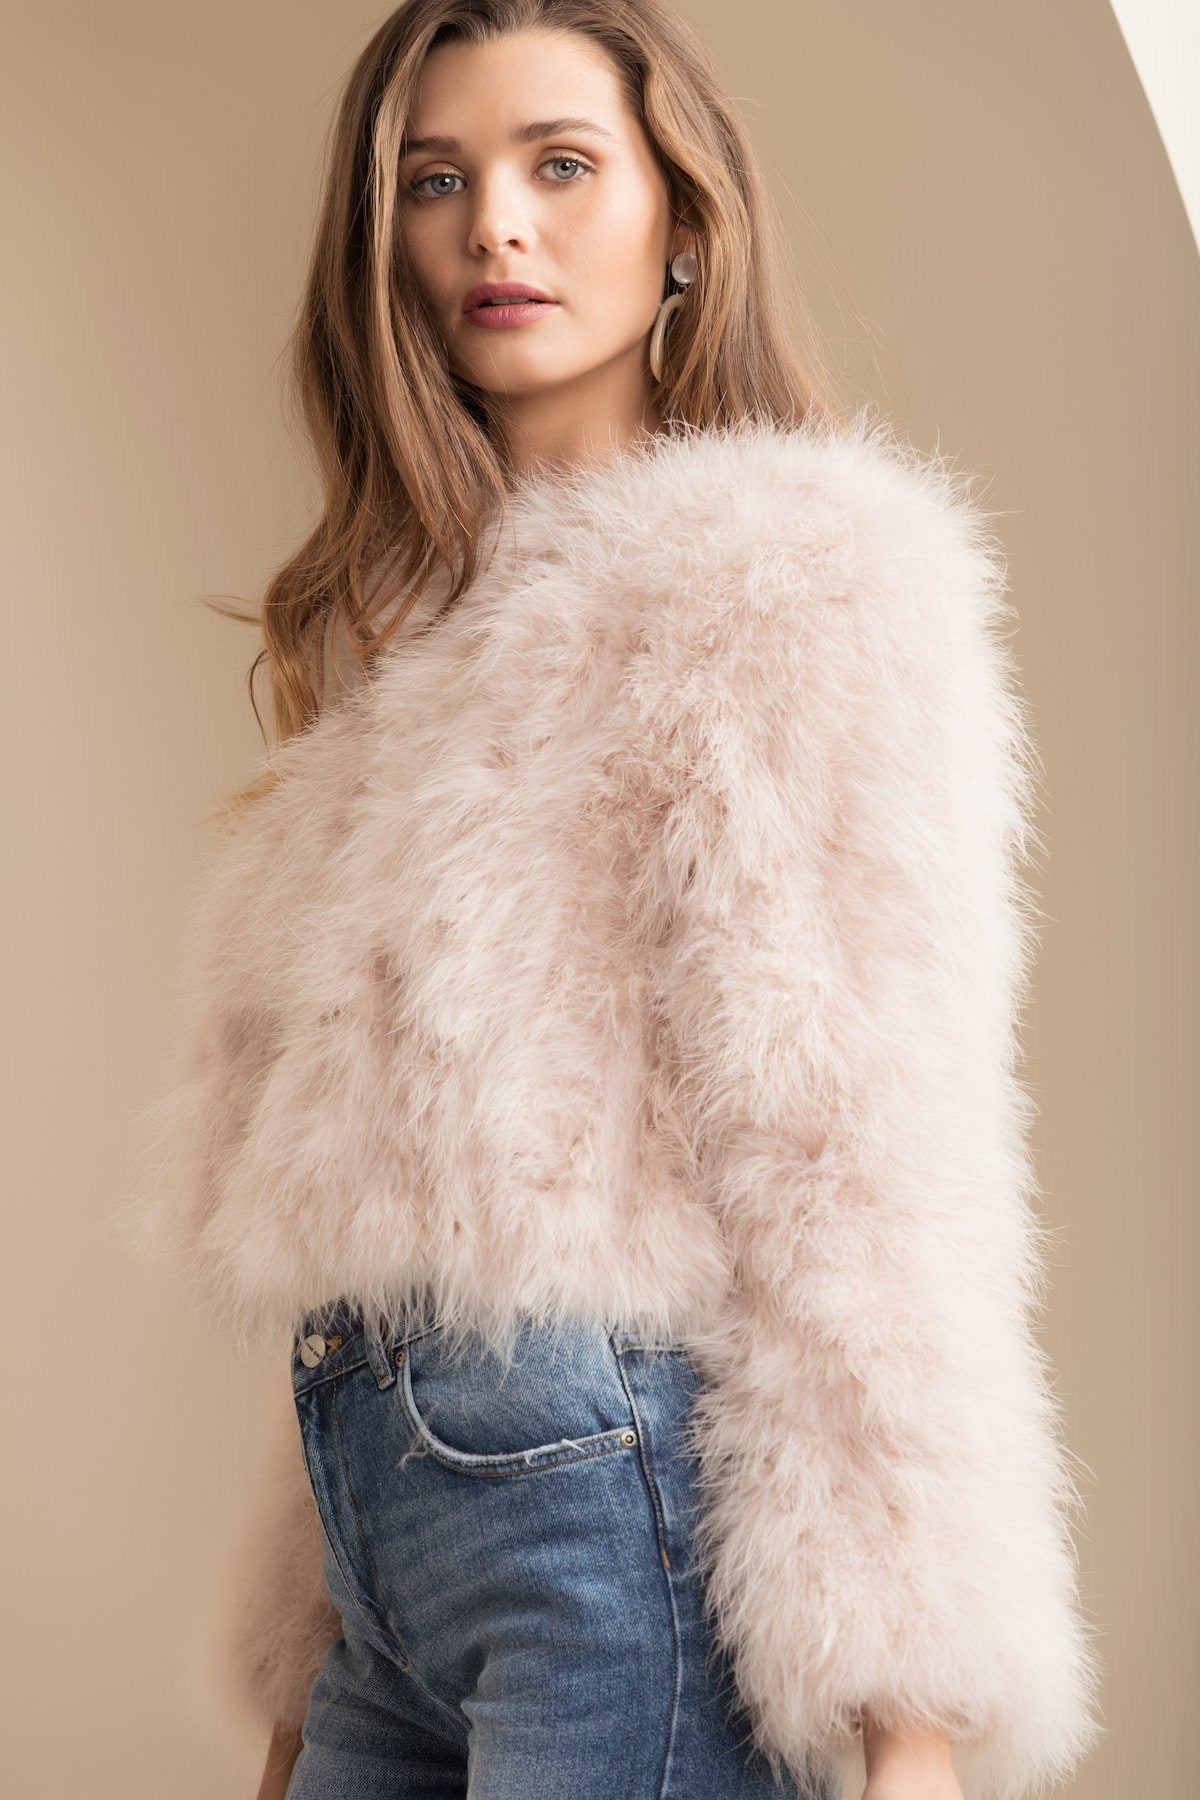 model wearing bubish luxe blush pink feather manhattan jacket